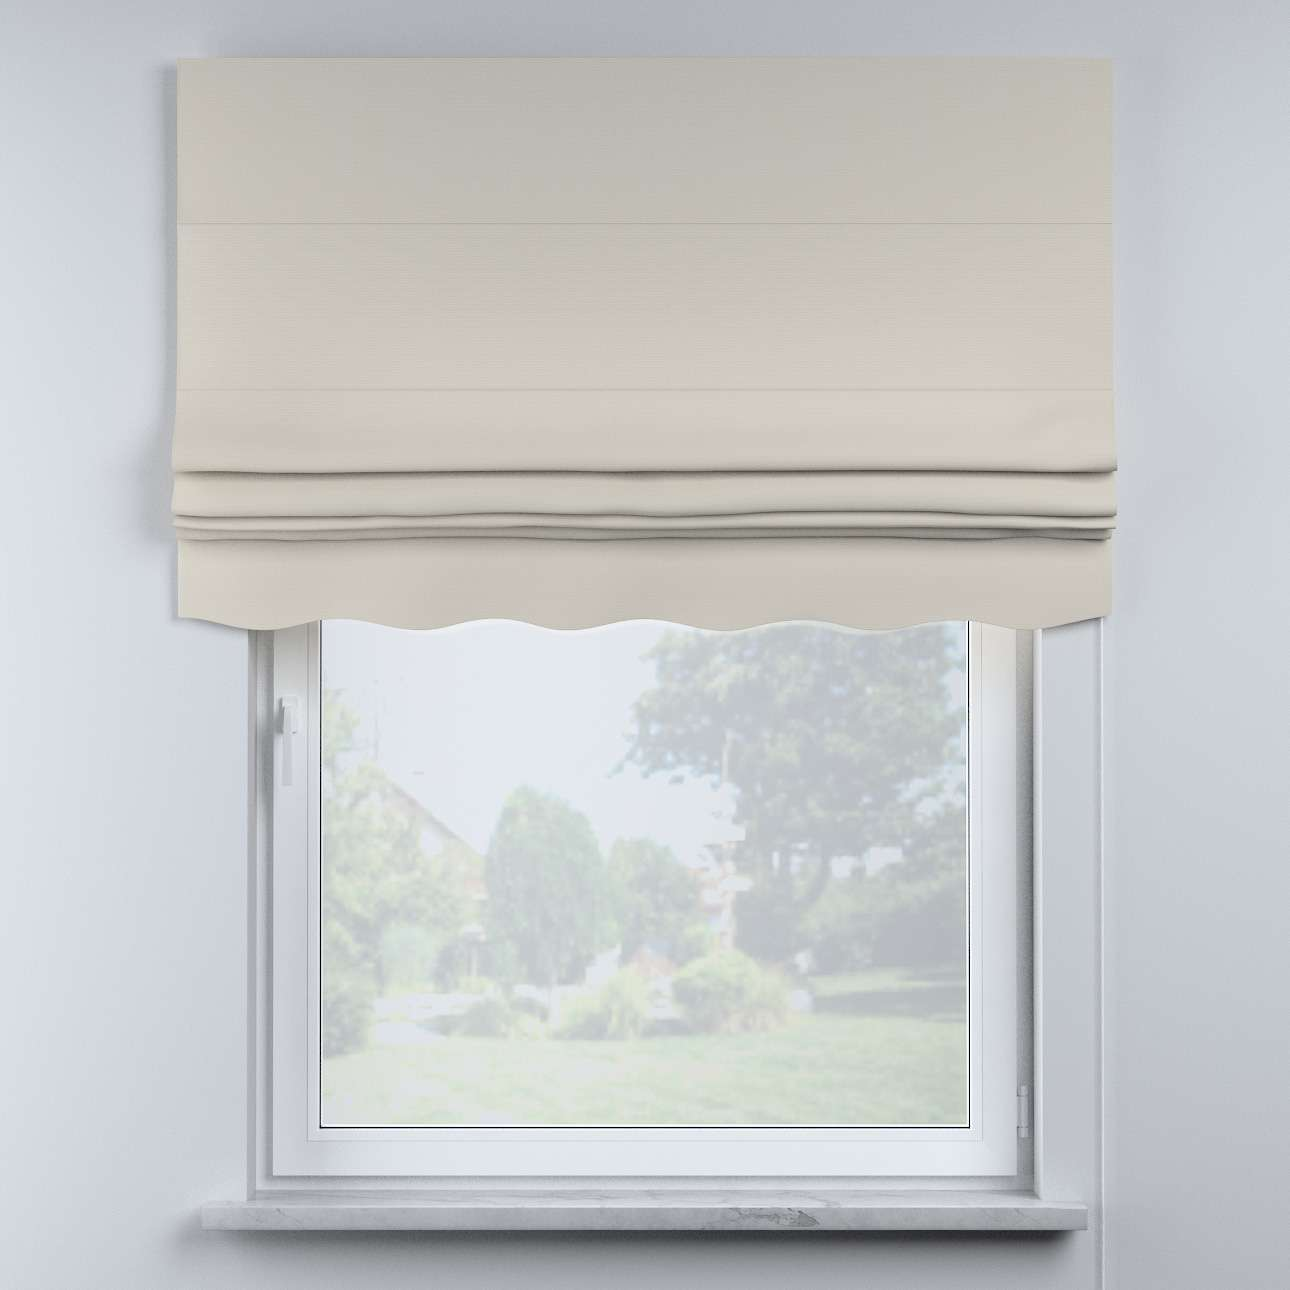 Mela roman blind in collection Cotton Story, fabric: 702-31